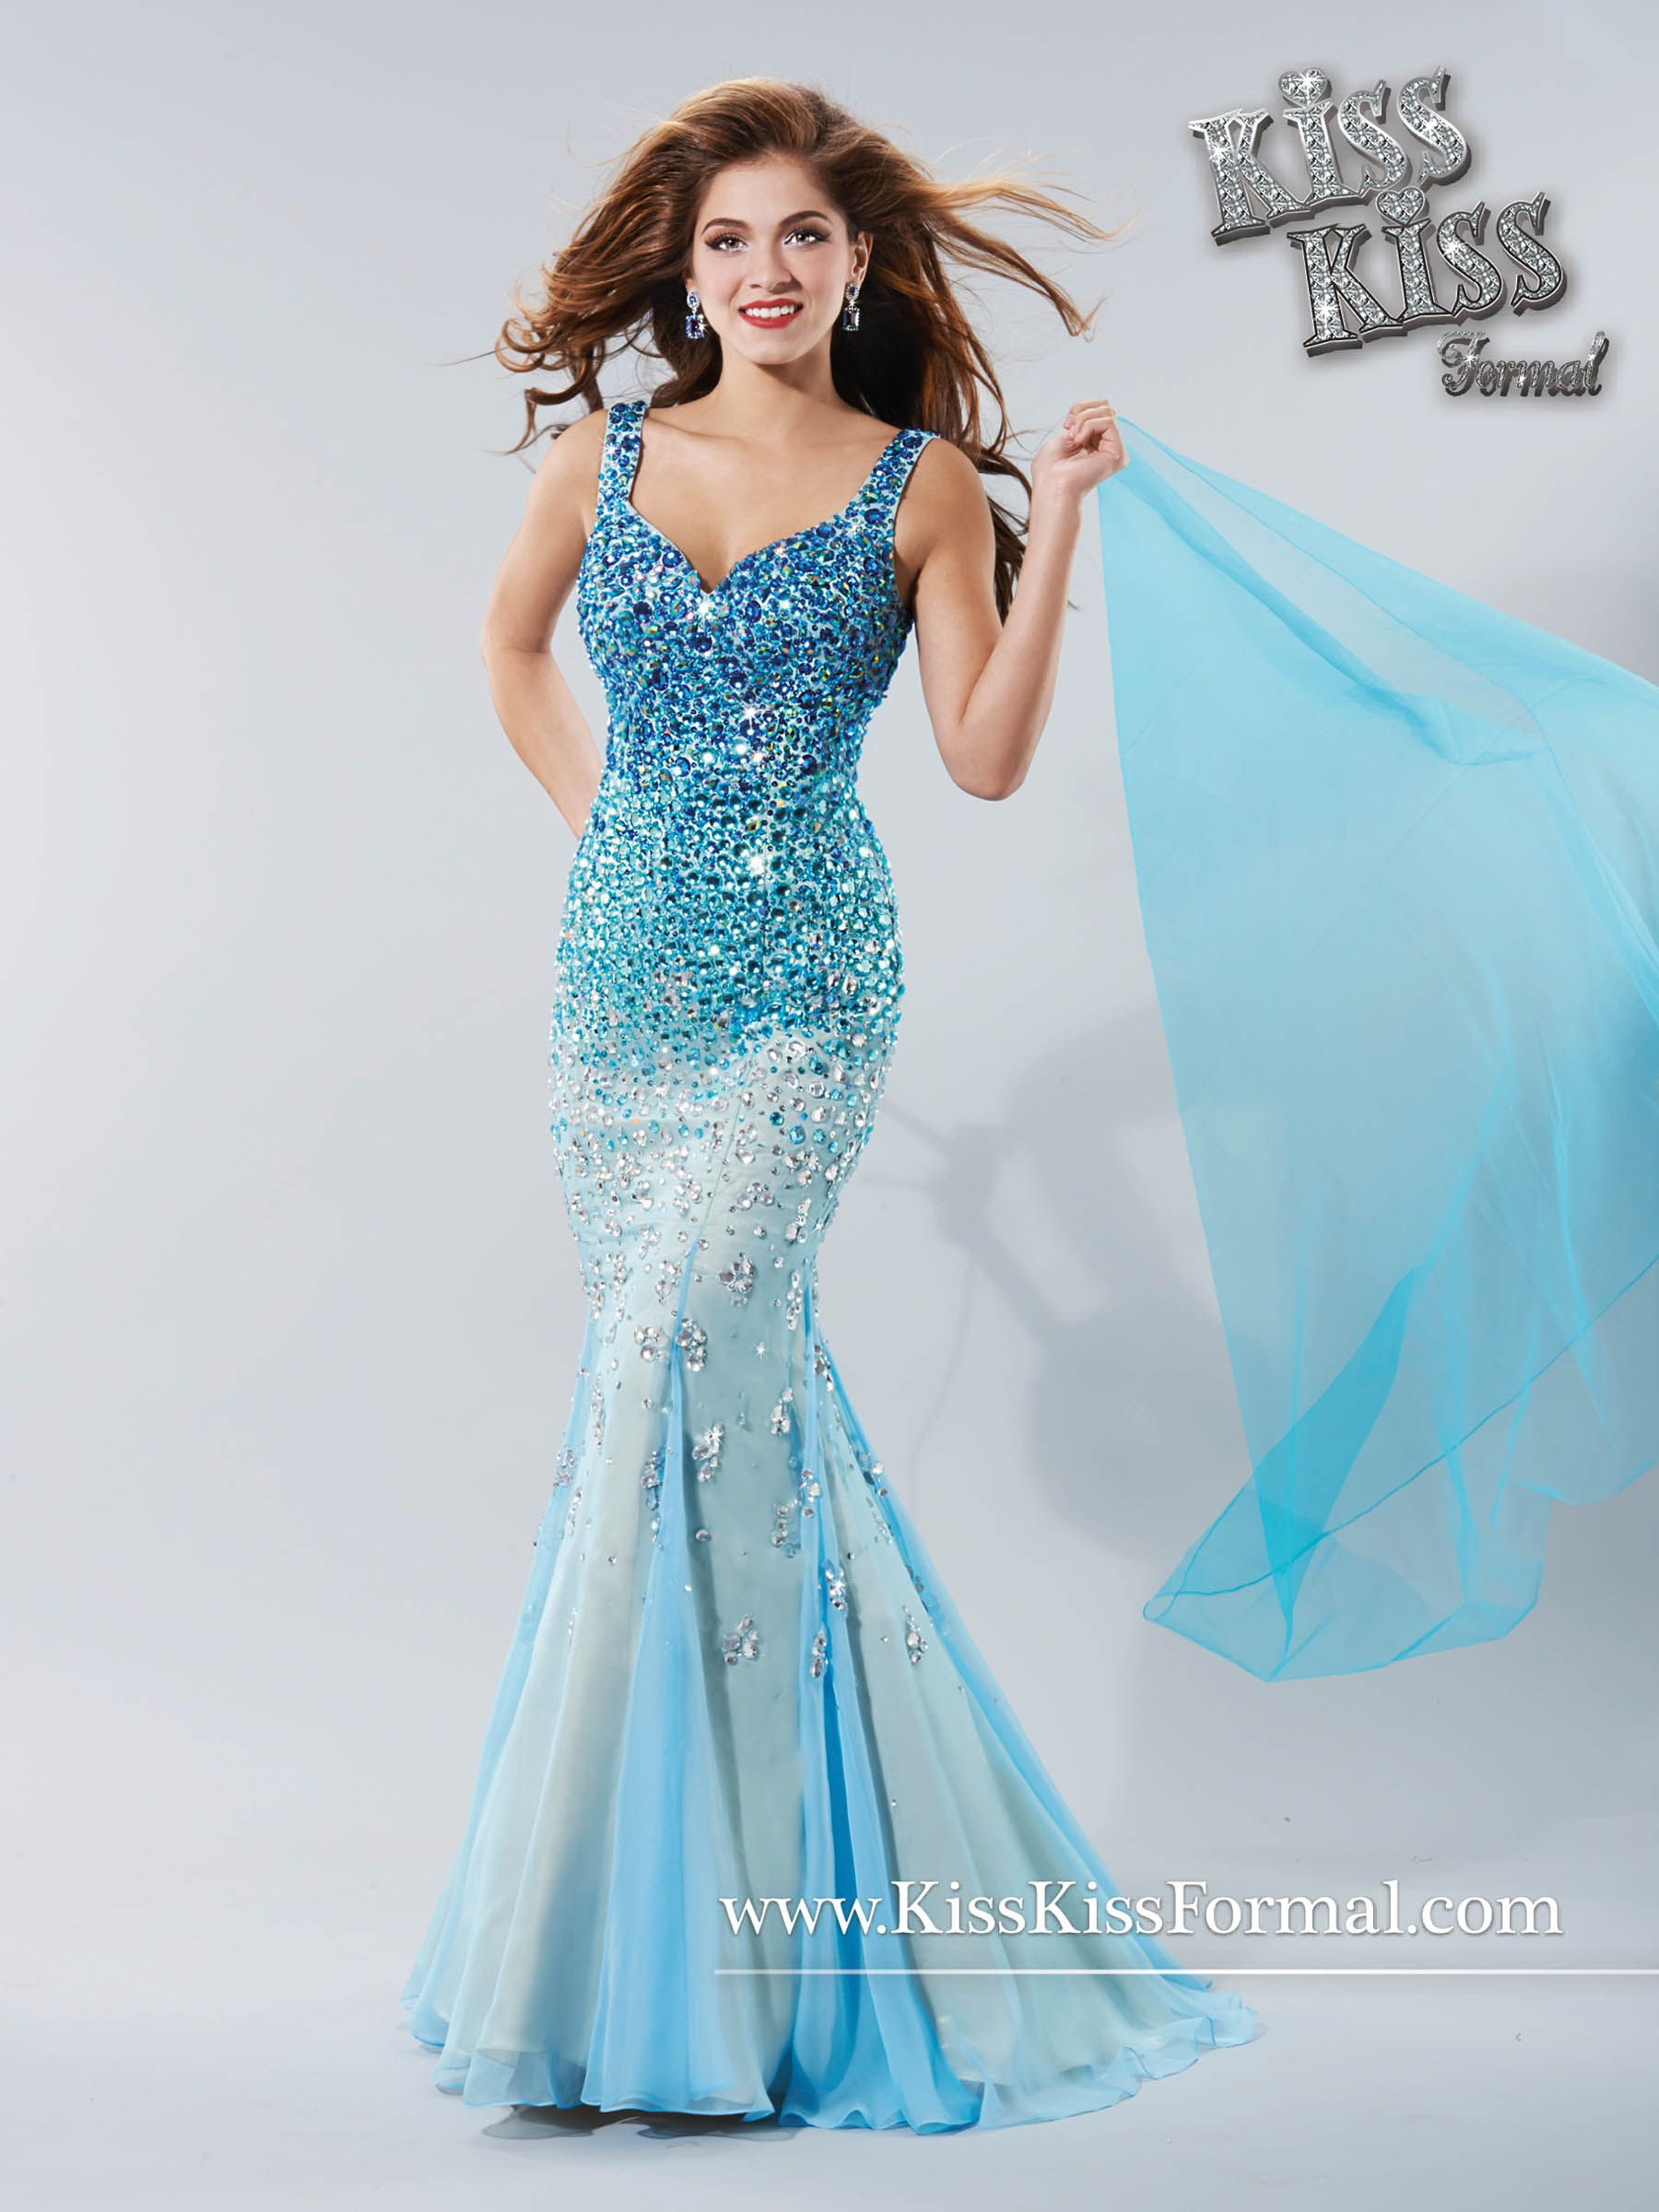 Mary\'s style ID P3715 Kiss Kiss Formal prom dress | Pageant 2017 ...